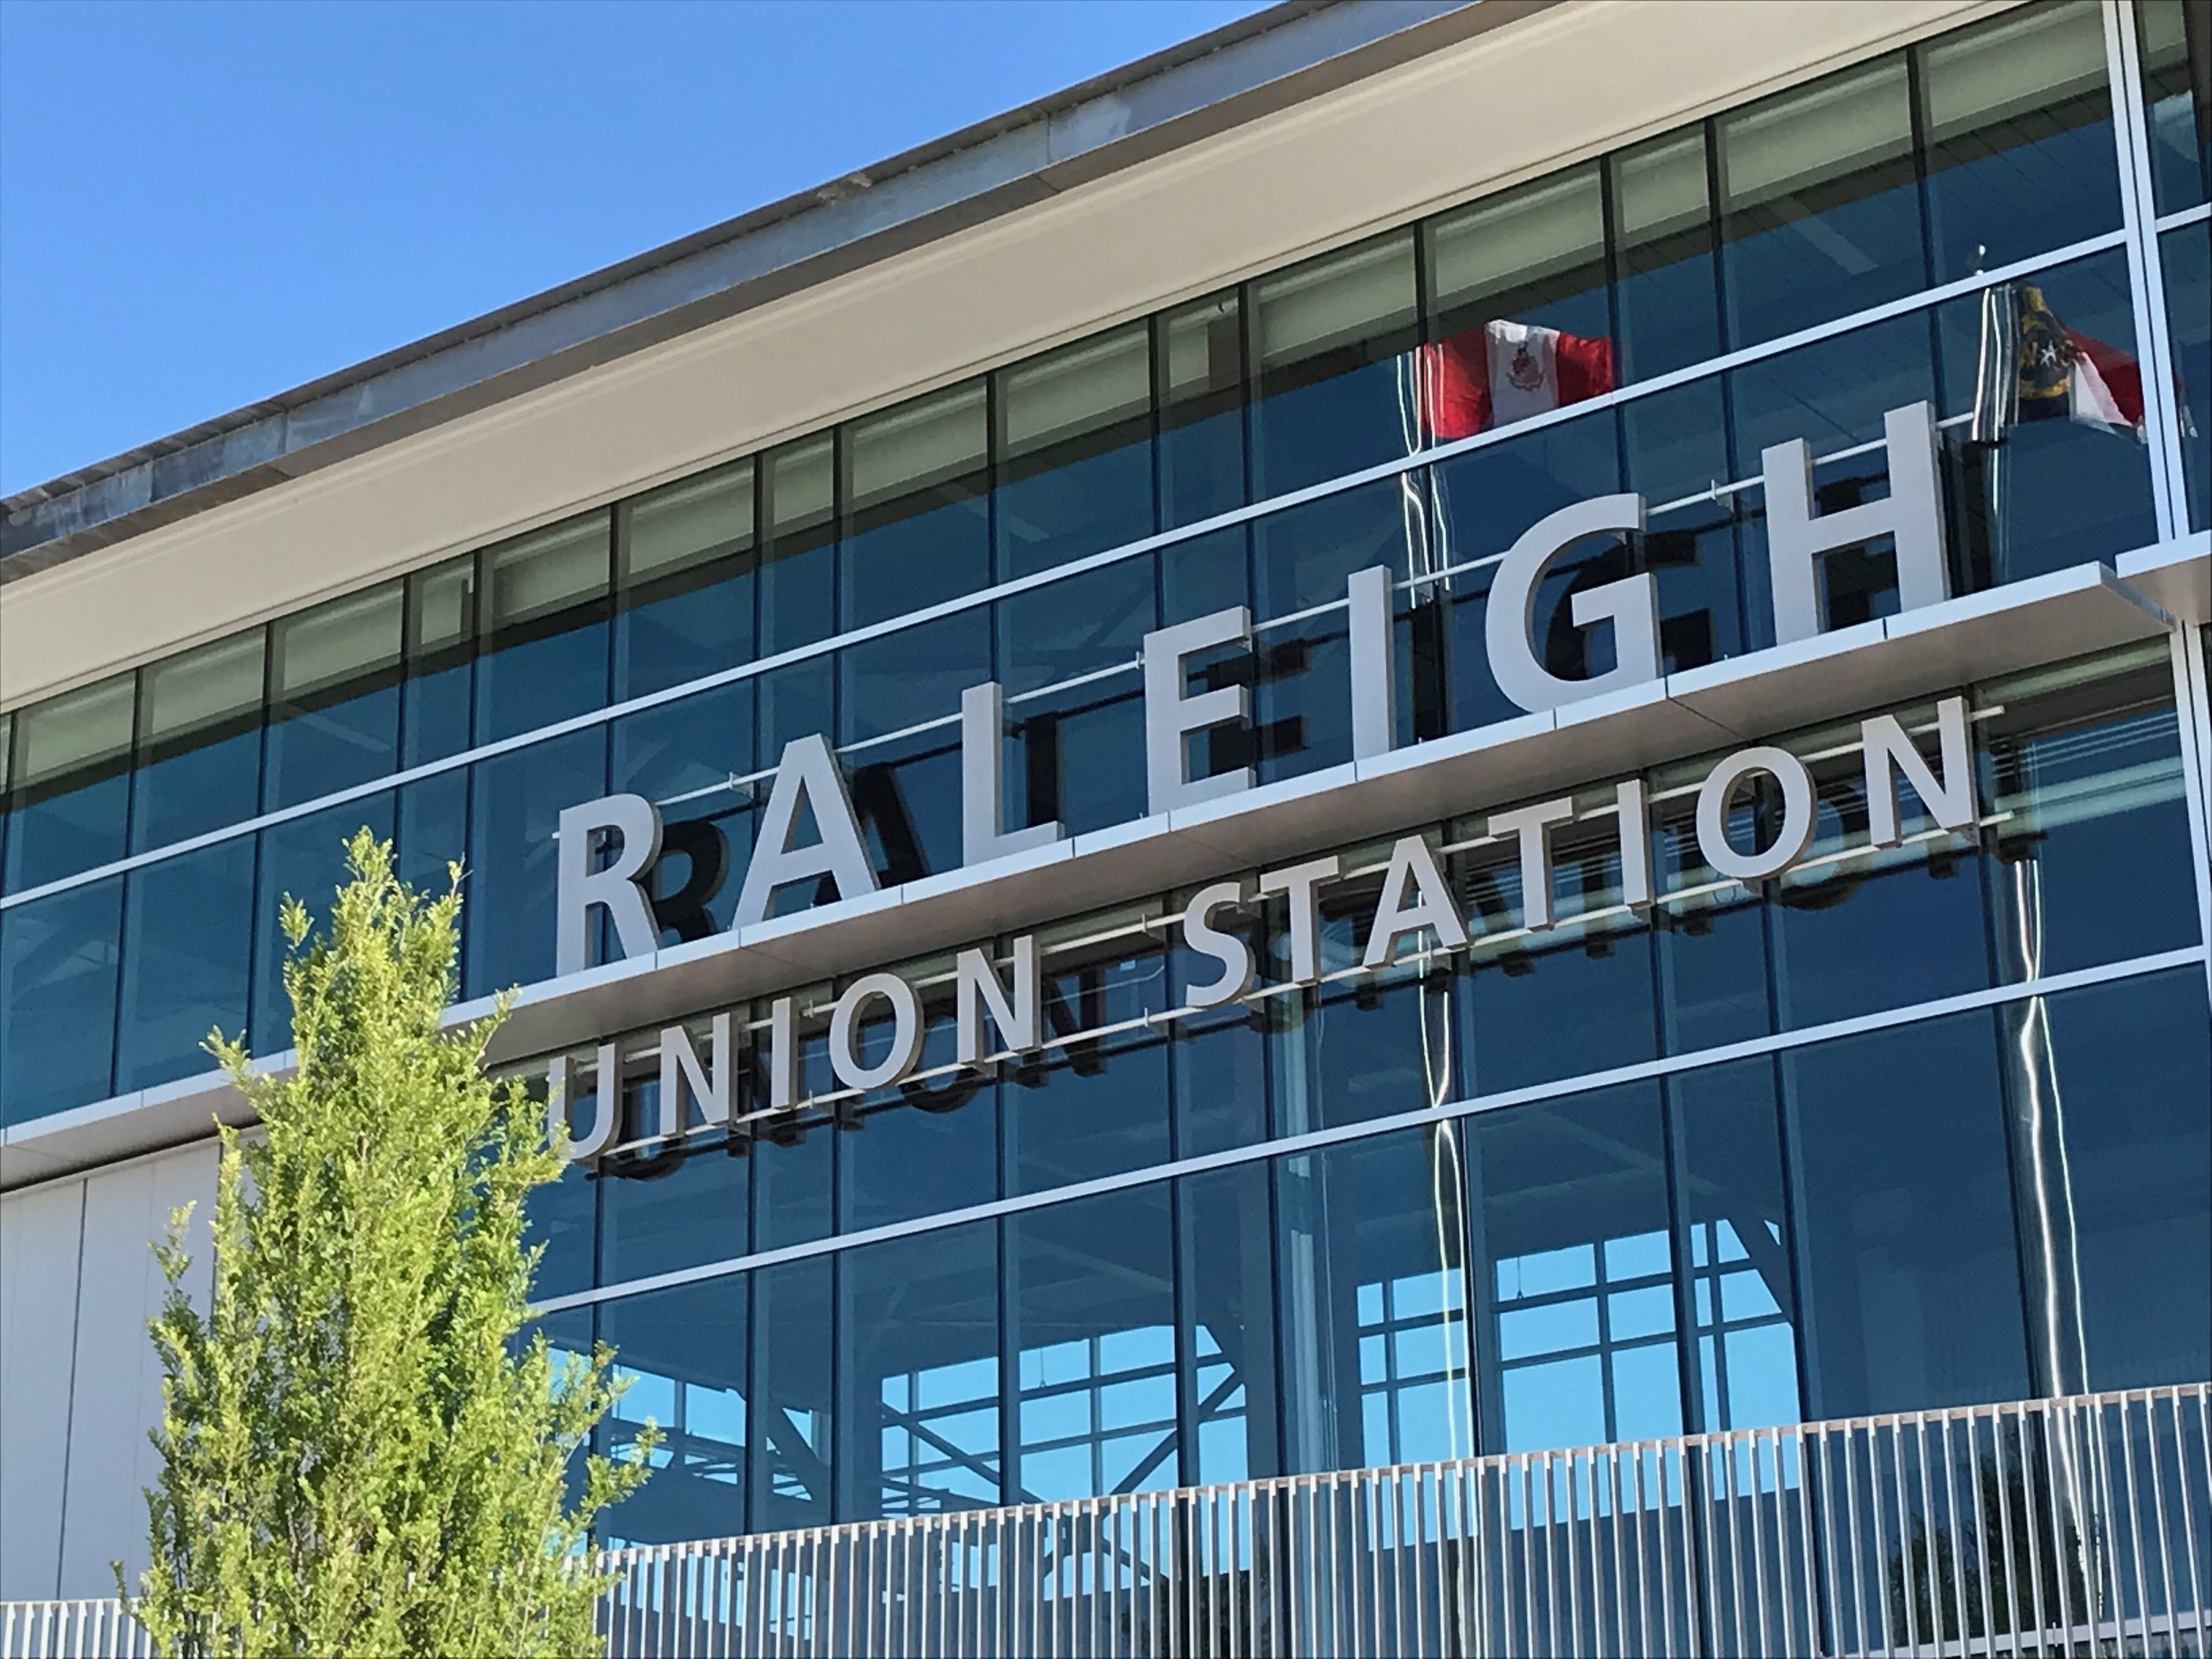 """<div class=""""meta image-caption""""><div class=""""origin-logo origin-image wtvd""""><span>WTVD</span></div><span class=""""caption-text"""">Raleigh Union Station is expected to be fully operational by June 2018.</span></div>"""